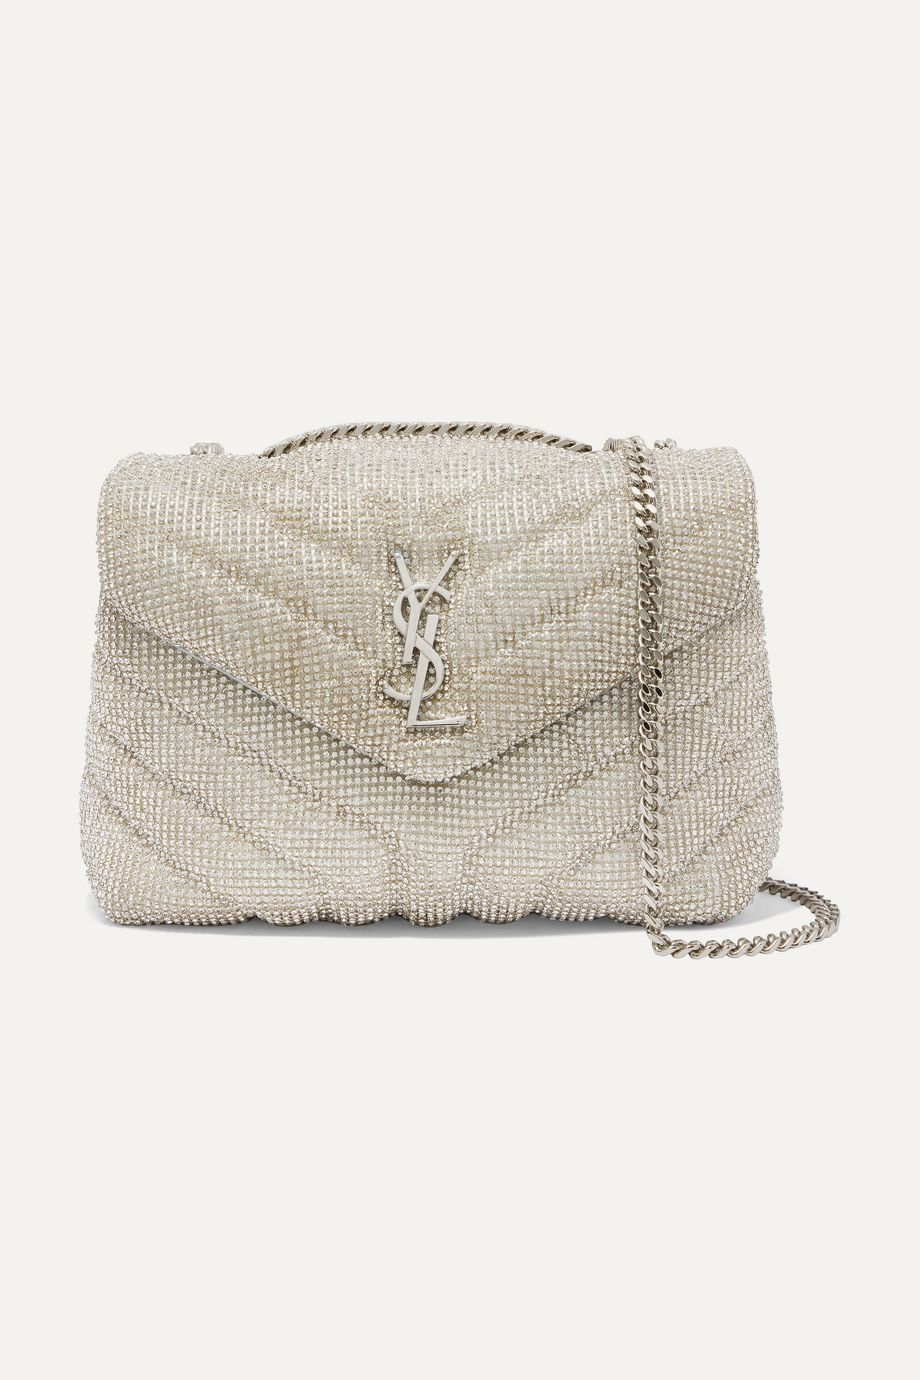 SAINT LAURENT Loulou small crystal-embellished quilted leather shoulder bag